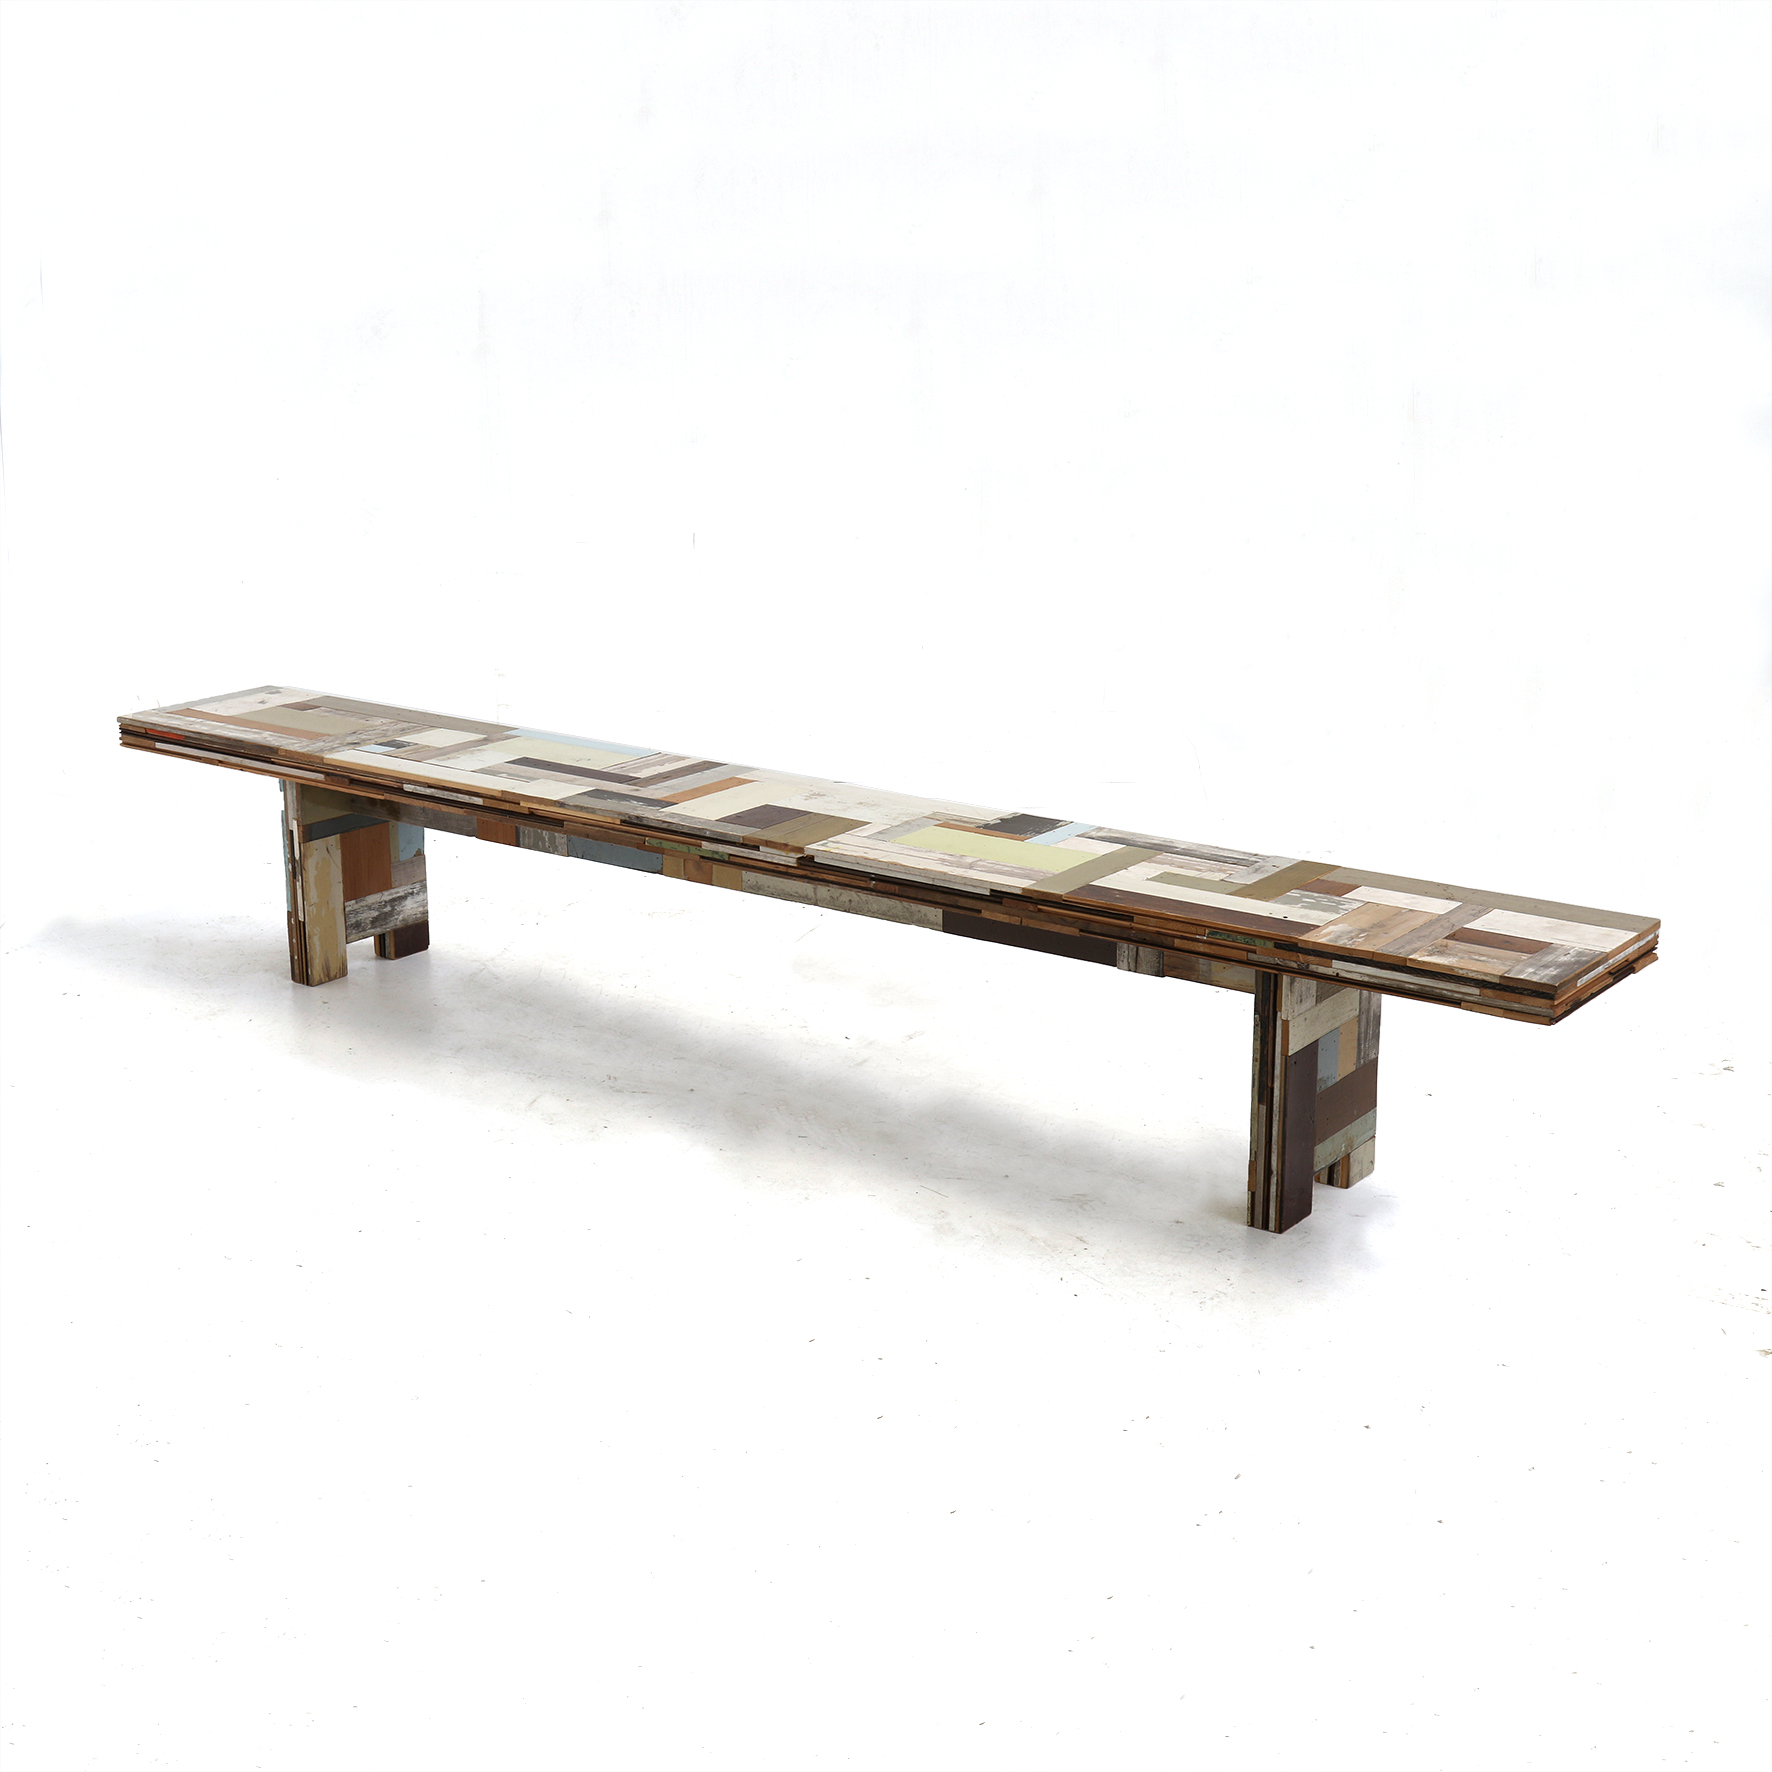 Bench Hond Woonkamer Benches Product Categories Piet Hein Eek